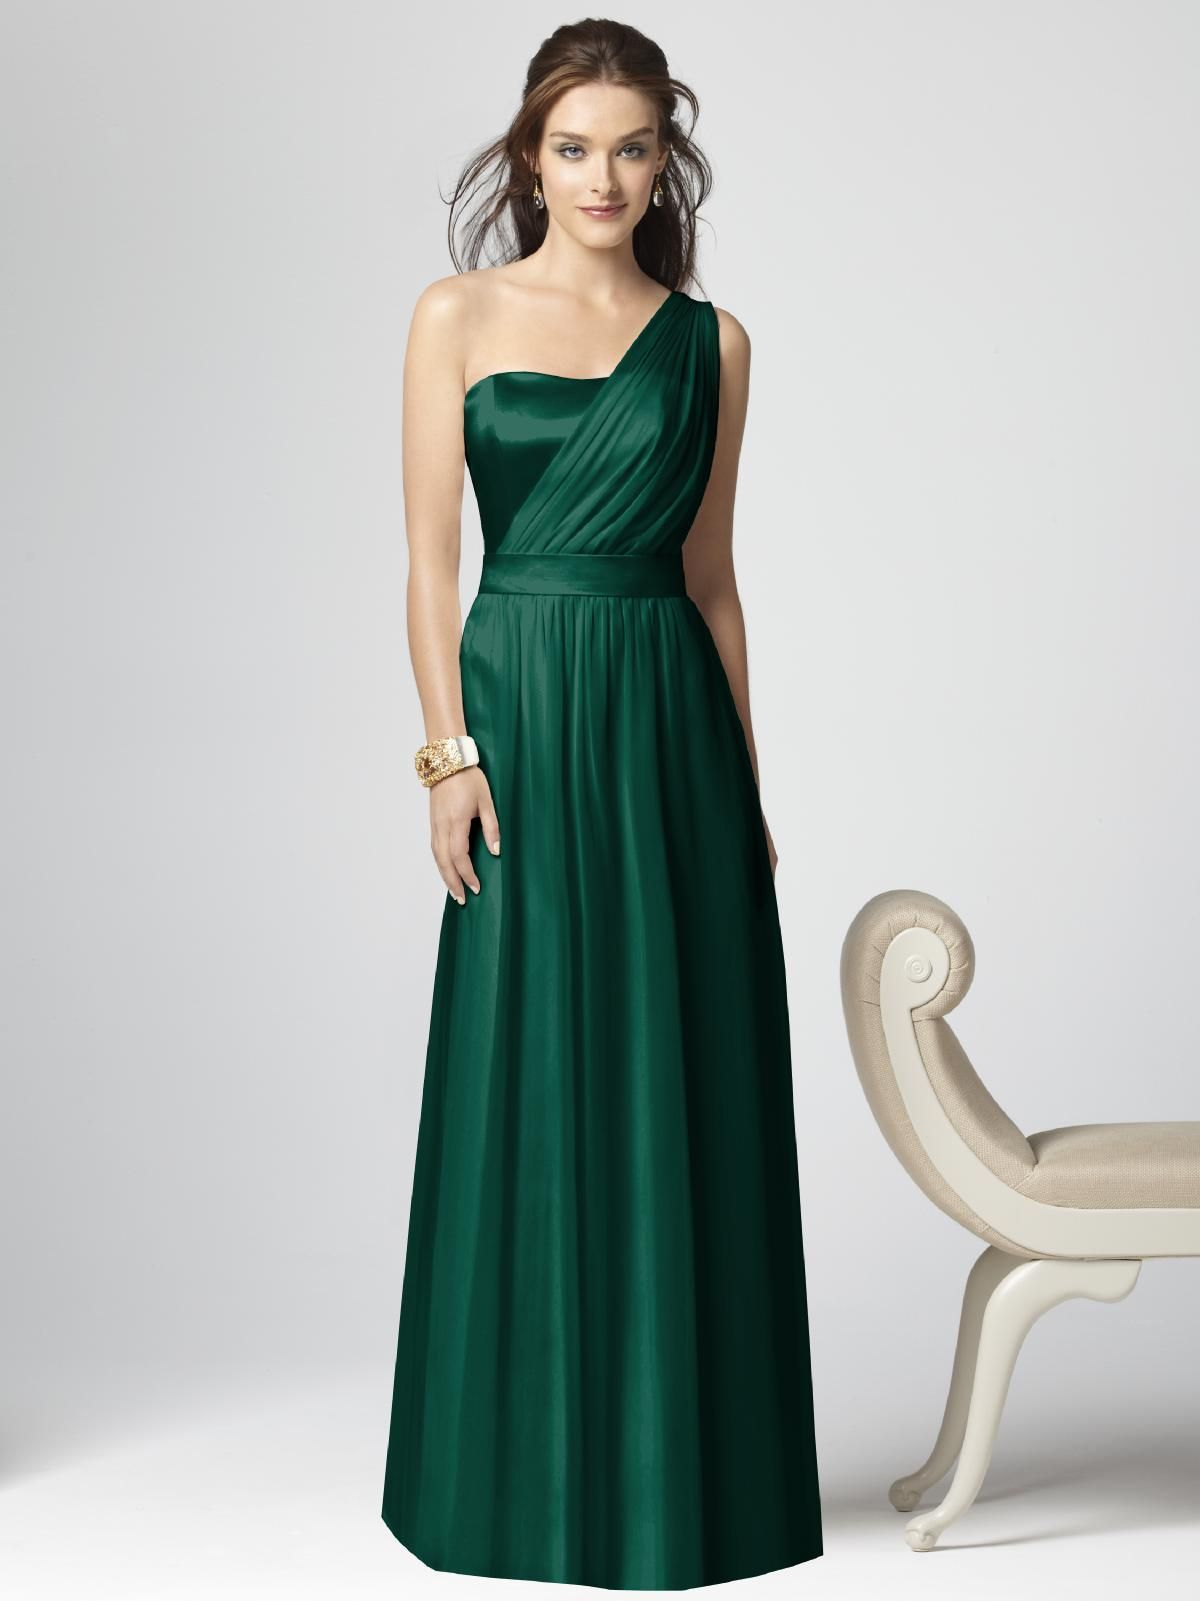 Blue bridesmaid dresses photos emeralds wedding and weddings emerald green bridesmaid dresses love love this site and this dress in ombrellifo Images